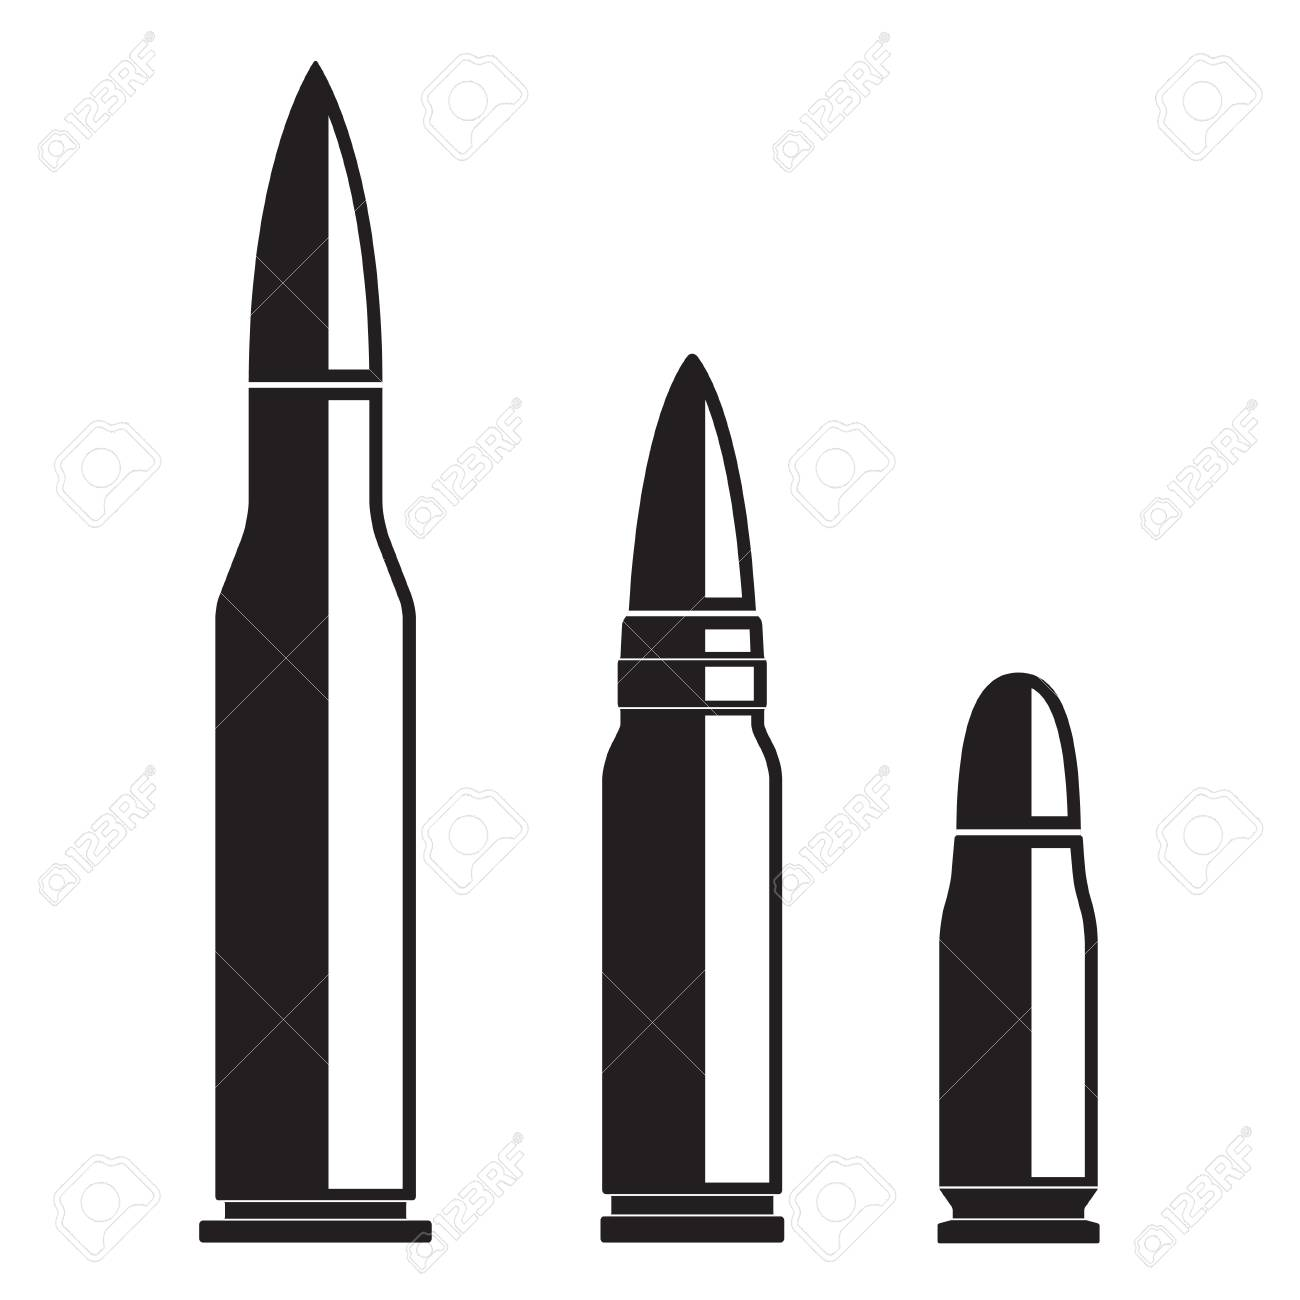 bullet icons set isolated